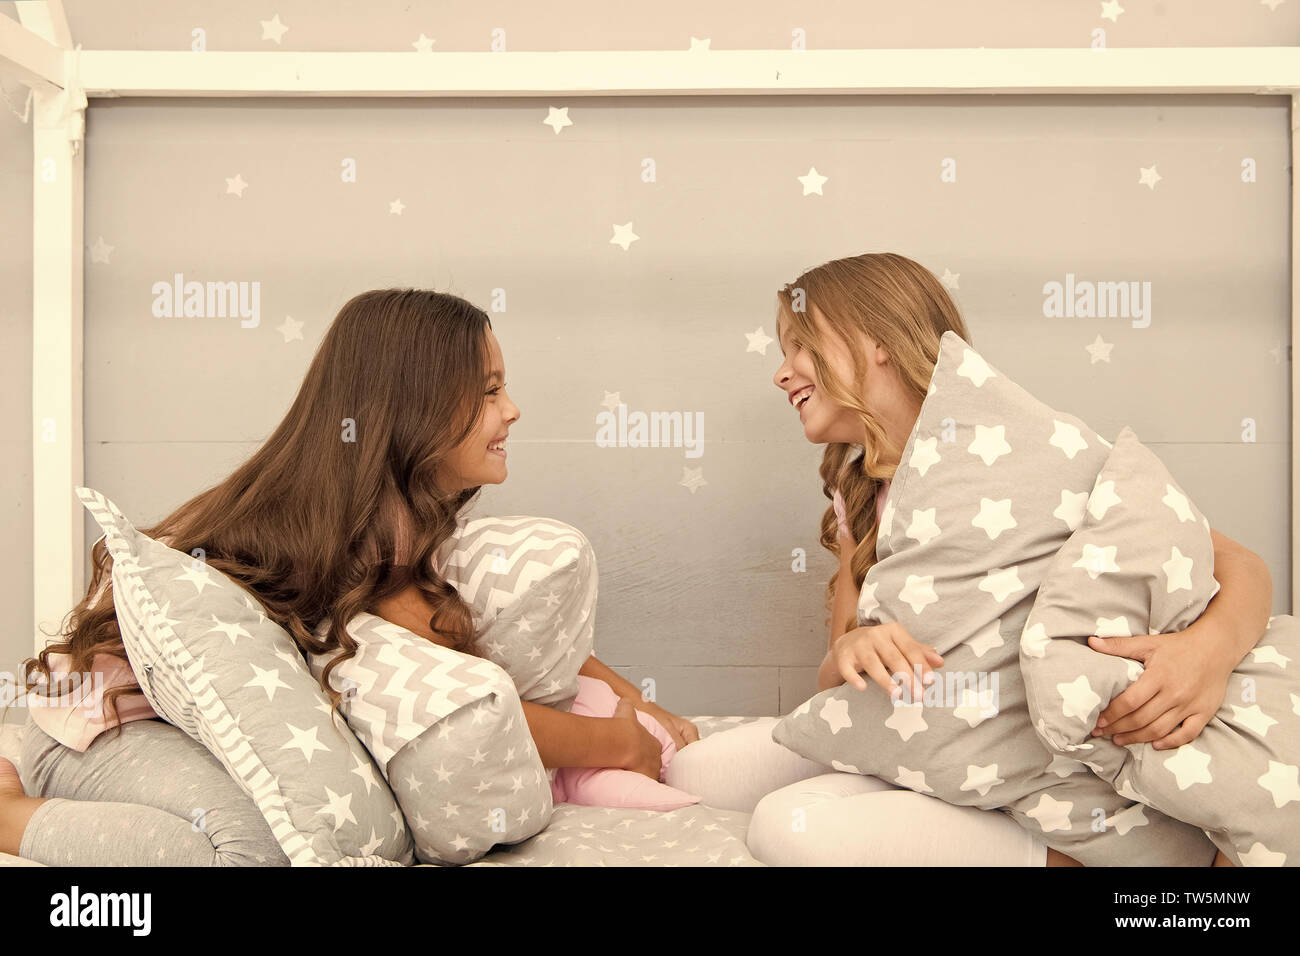 Sleepover time for pillow fight. Girls sleepover party ideas. Soulmates girls having fun sleepover party. Girls happy best friends in pajamas with pil - Stock Image